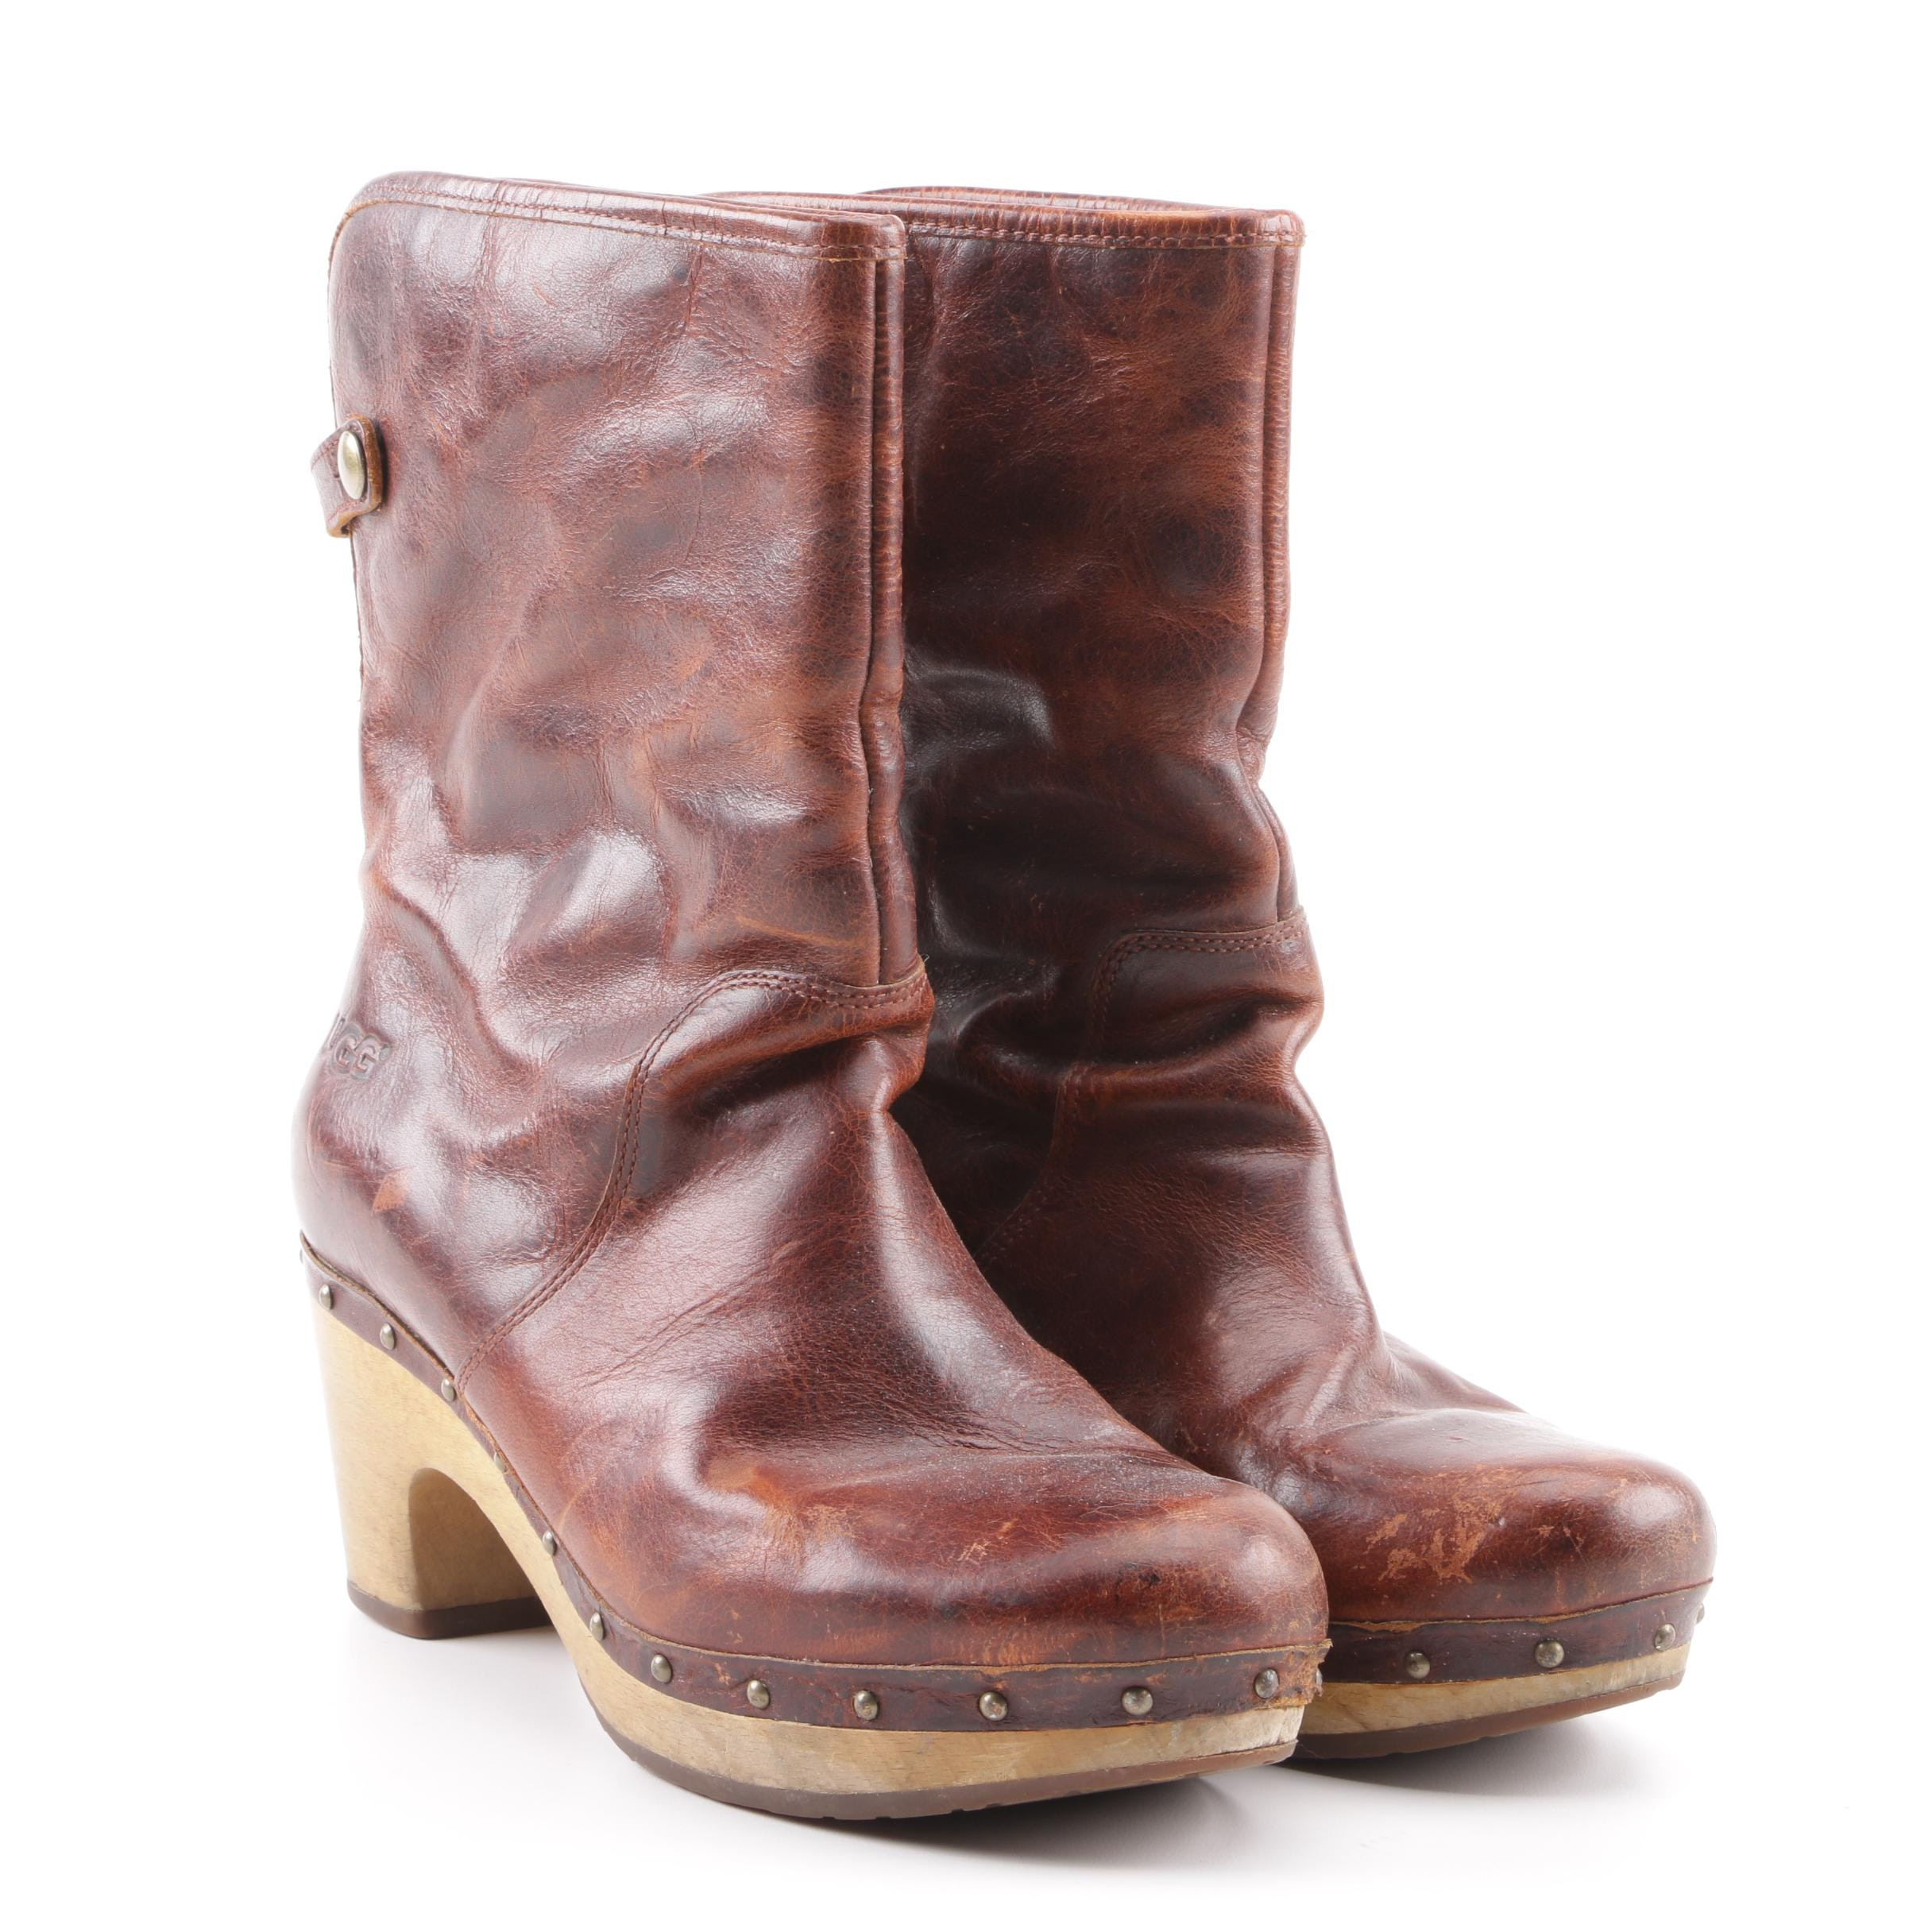 Women's UGG Lynea Brown Leather and Shearling Boots 1001793